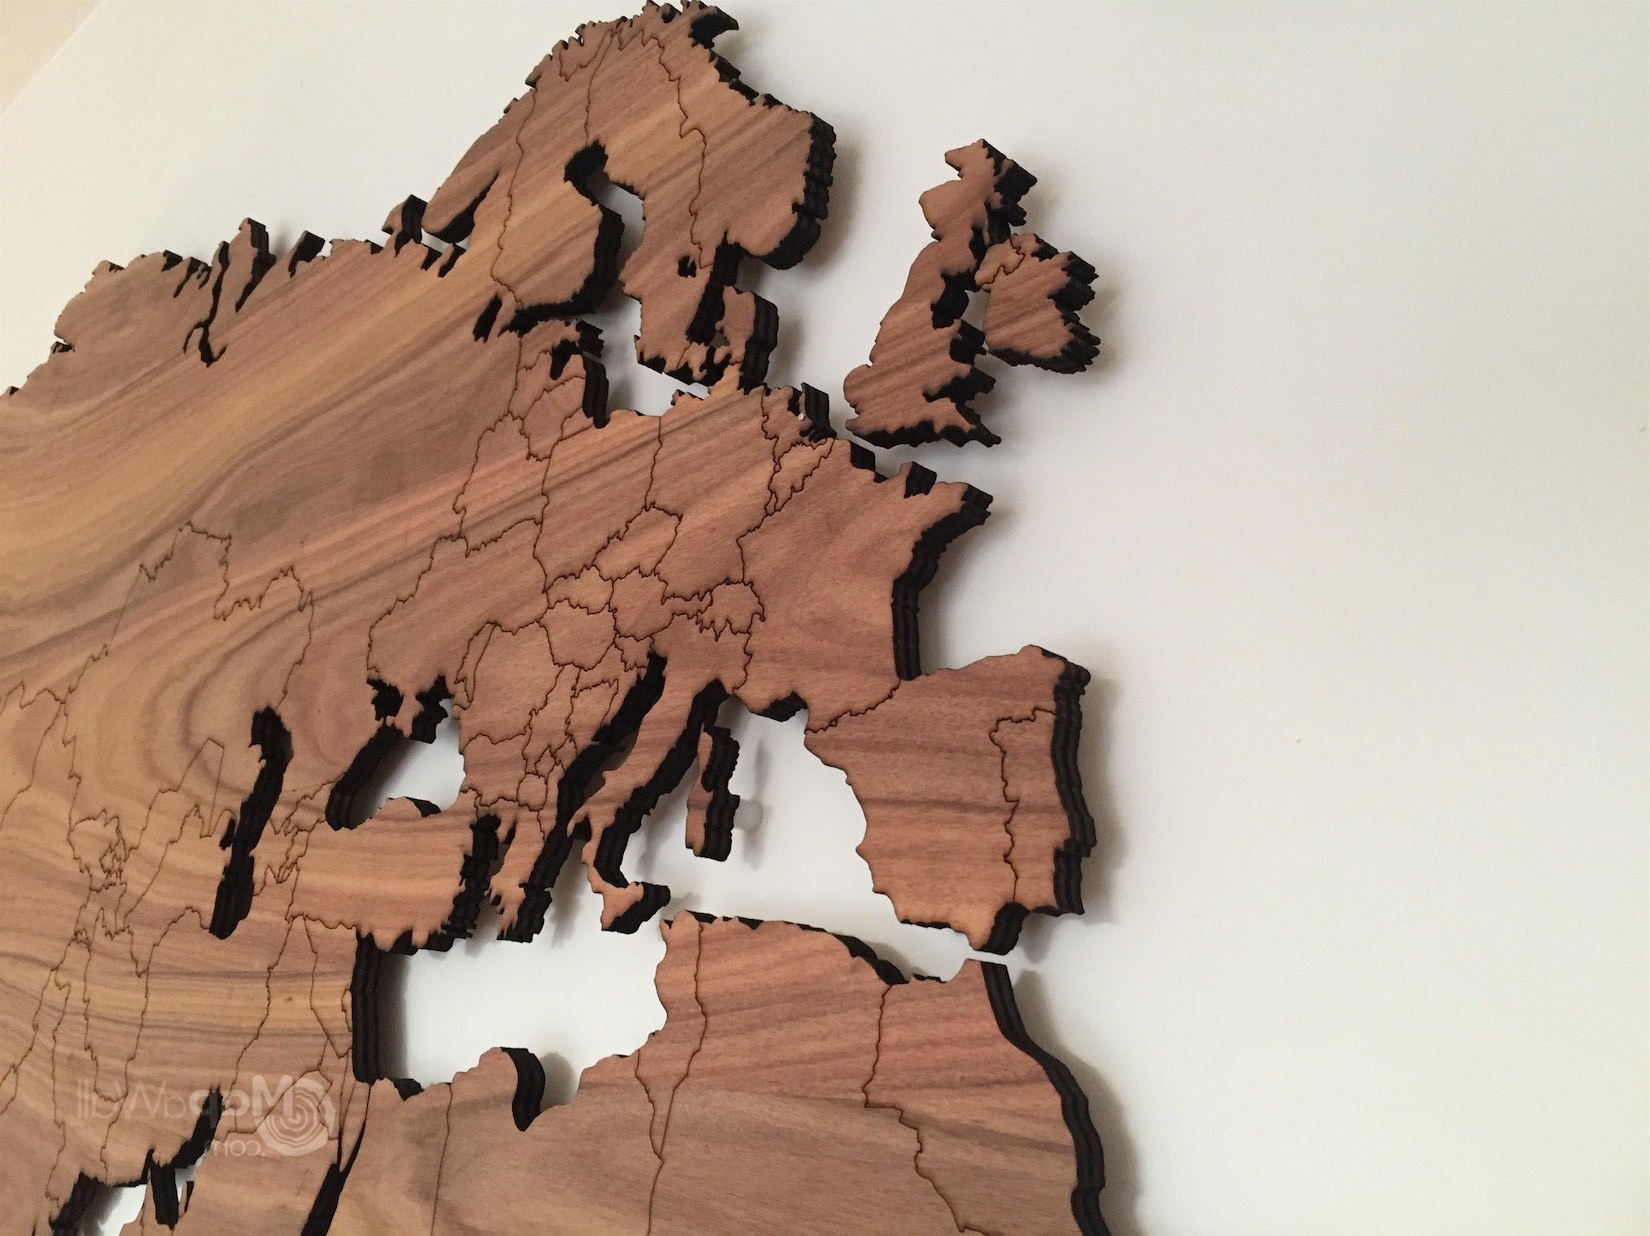 2018 Wall Art Designs Wooden World Map Of At Zarzosa Me Throughout Wood Inside Wood Map Wall Art (View 2 of 20)